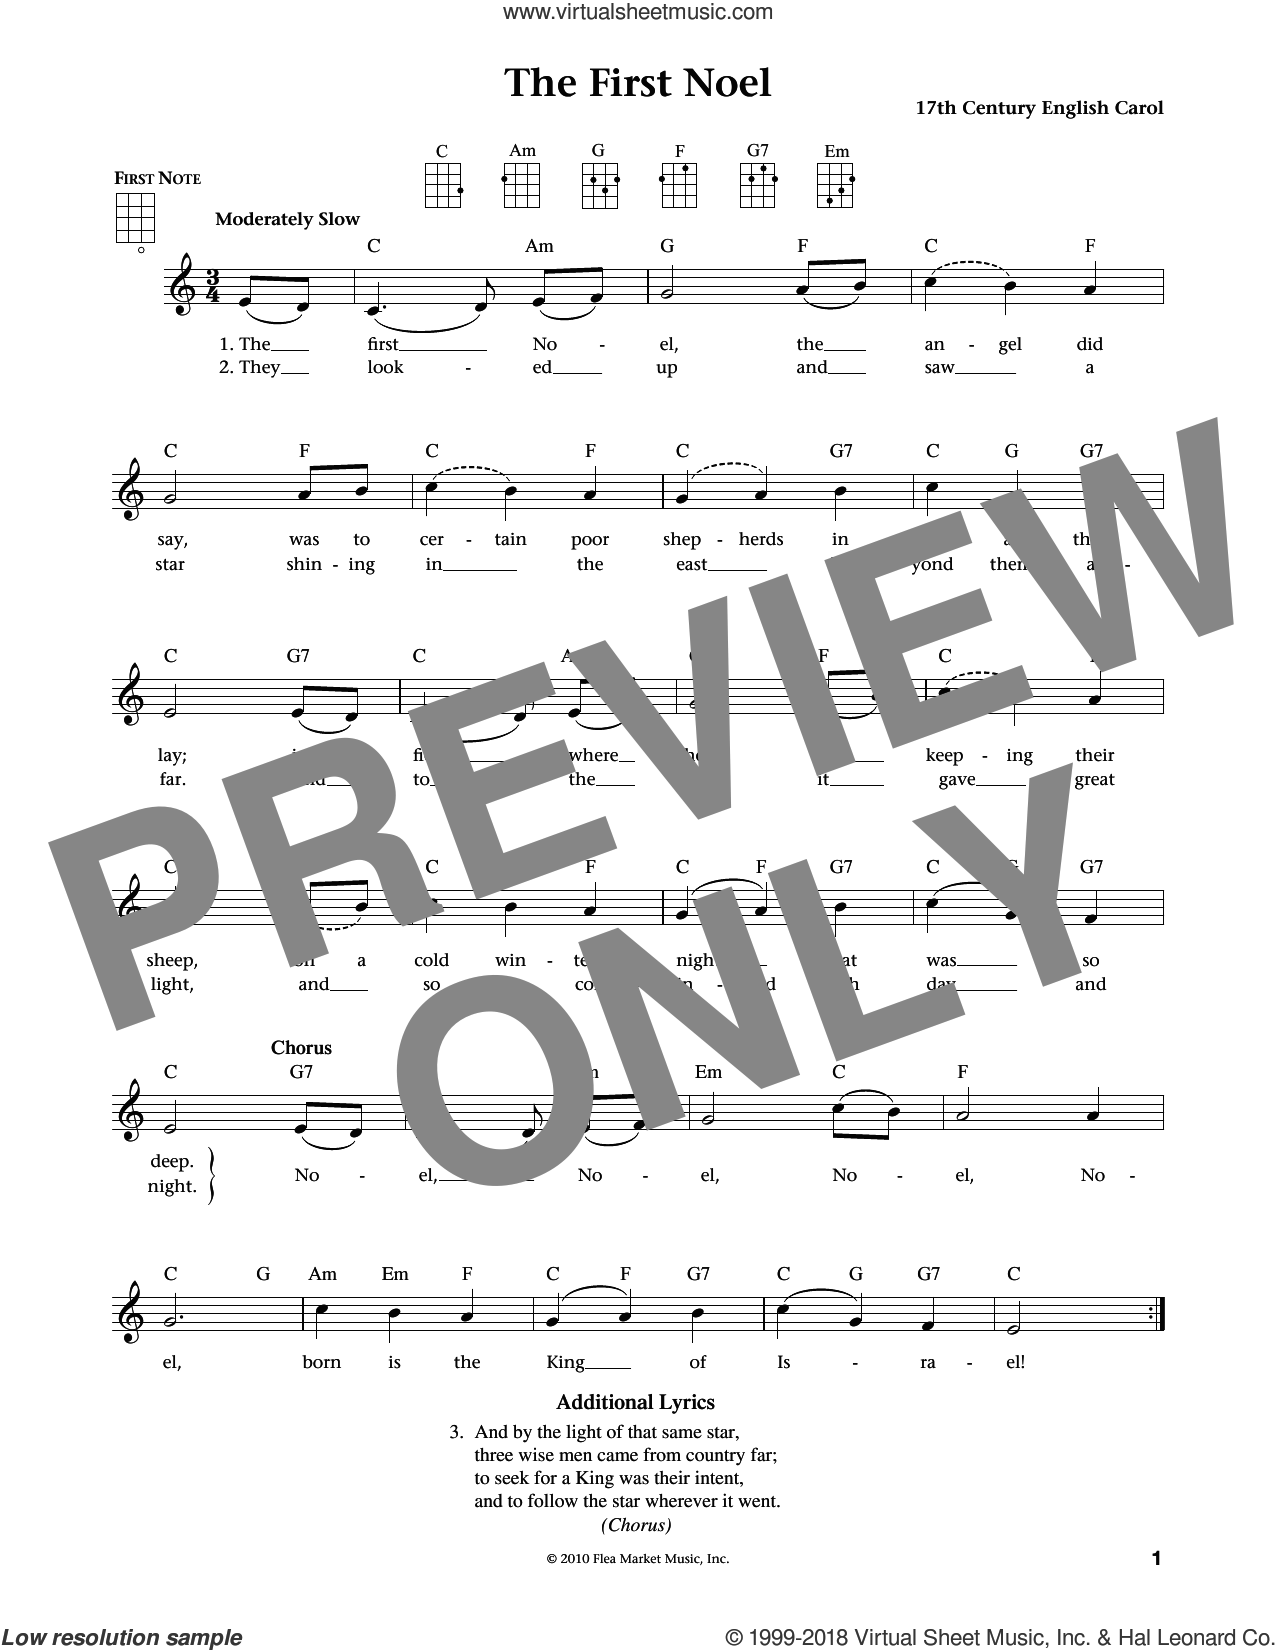 The First Noel (from The Daily Ukulele) (arr. Liz and Jim Beloff) sheet music for ukulele by Anonymous, Jim Beloff, Liz Beloff and Miscellaneous, intermediate skill level